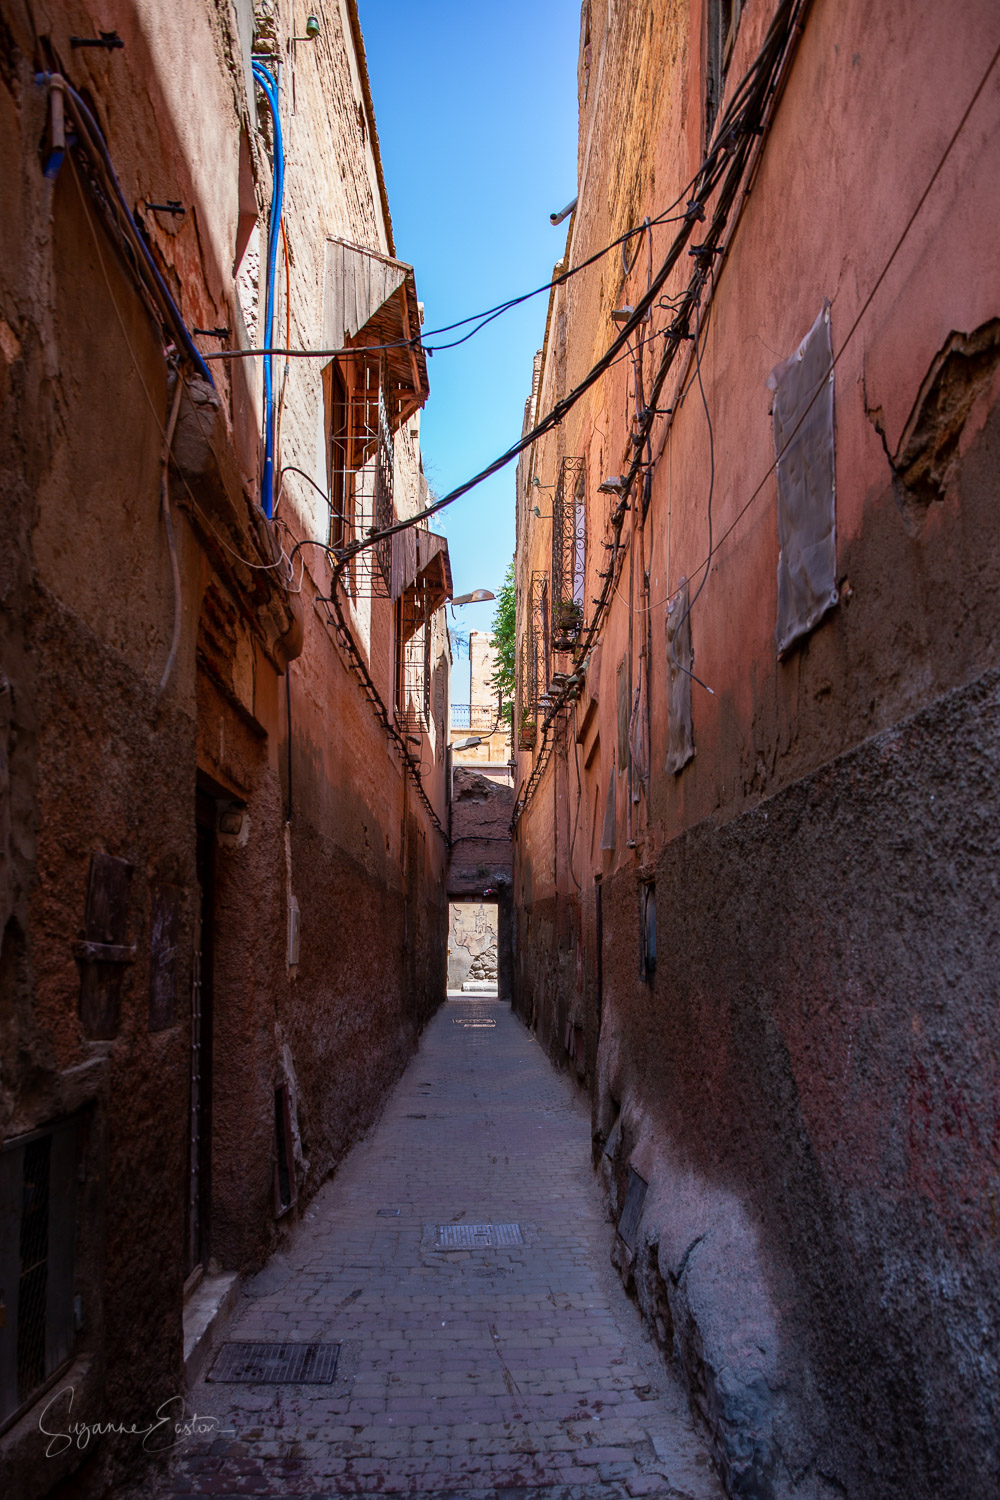 Darb Manchoura, the narrow street that is home to Lamaza Synagogue in Marrakech